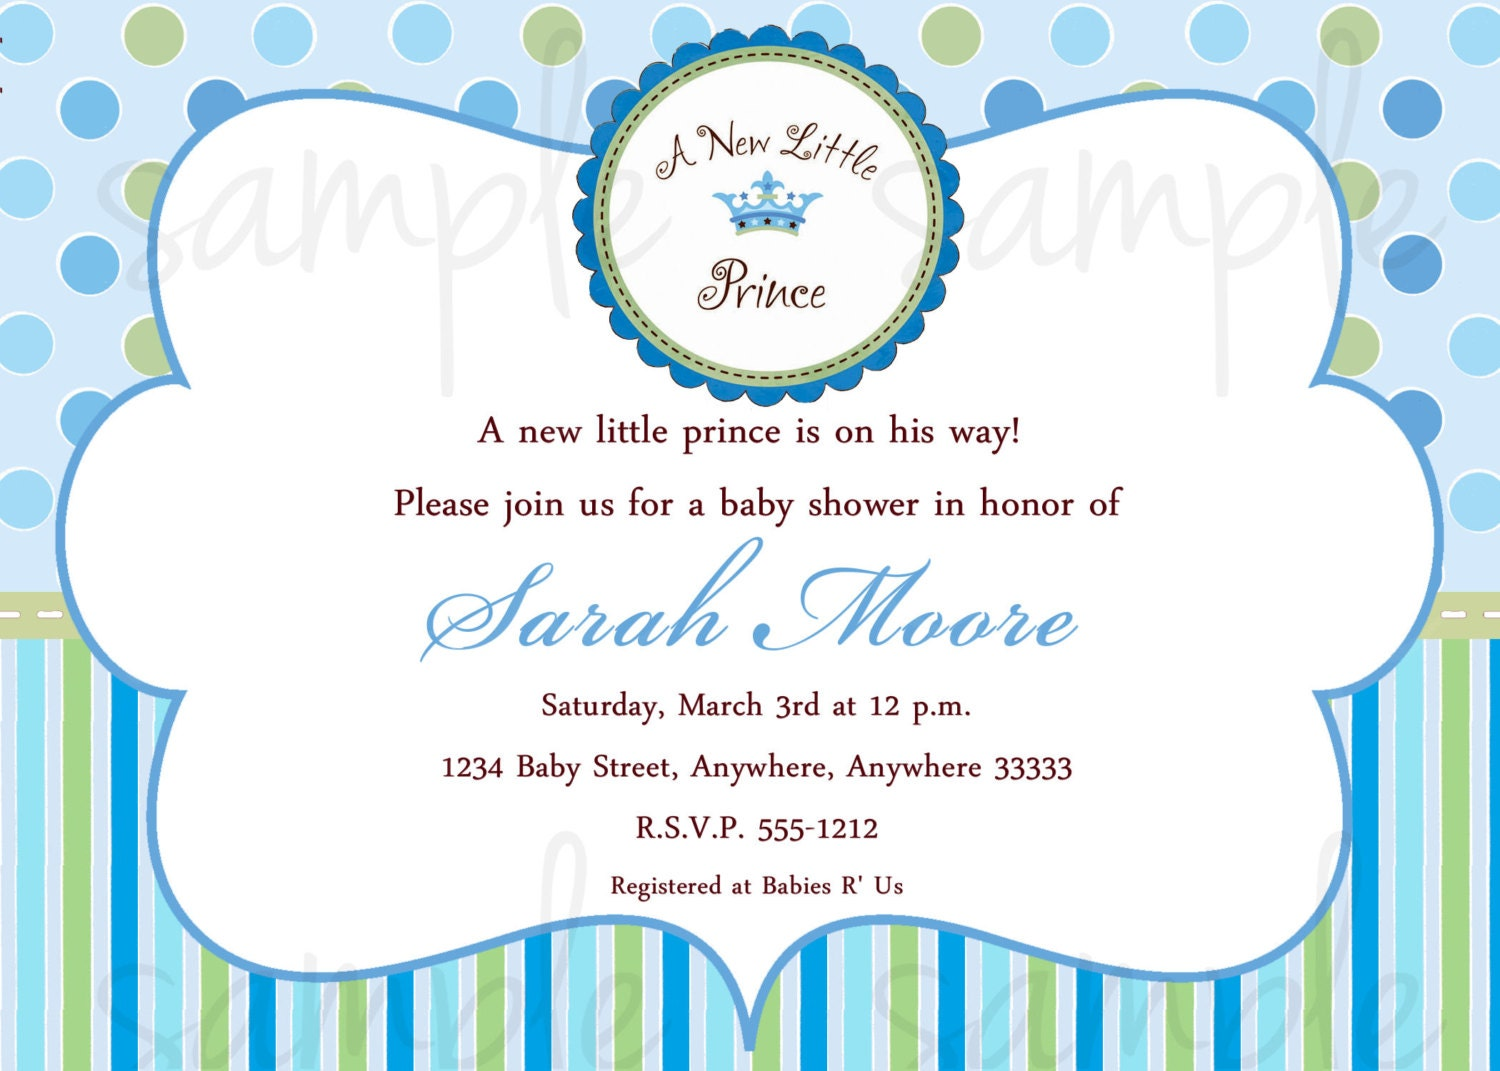 Princess Baby Shower Invitations. 100 Little Prince Invitations Baby ...